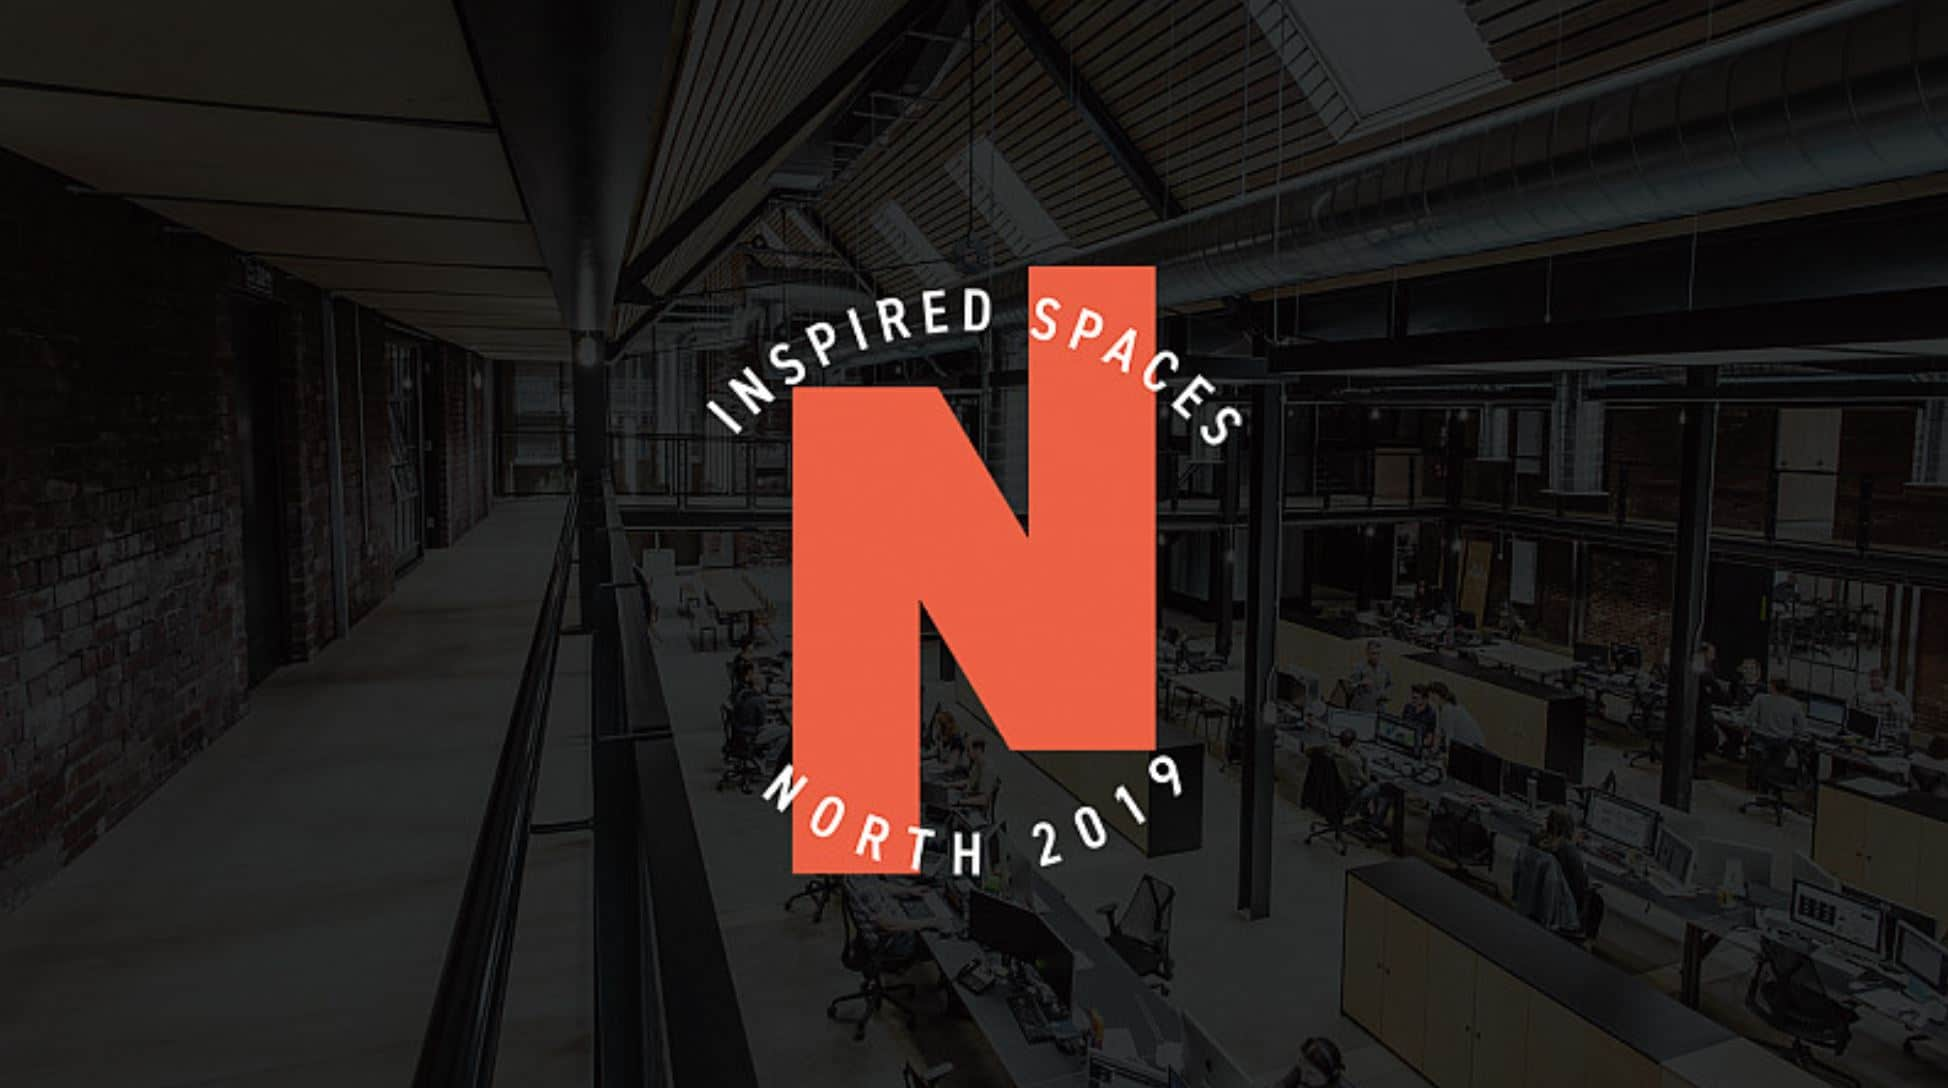 Inspired Spaces North